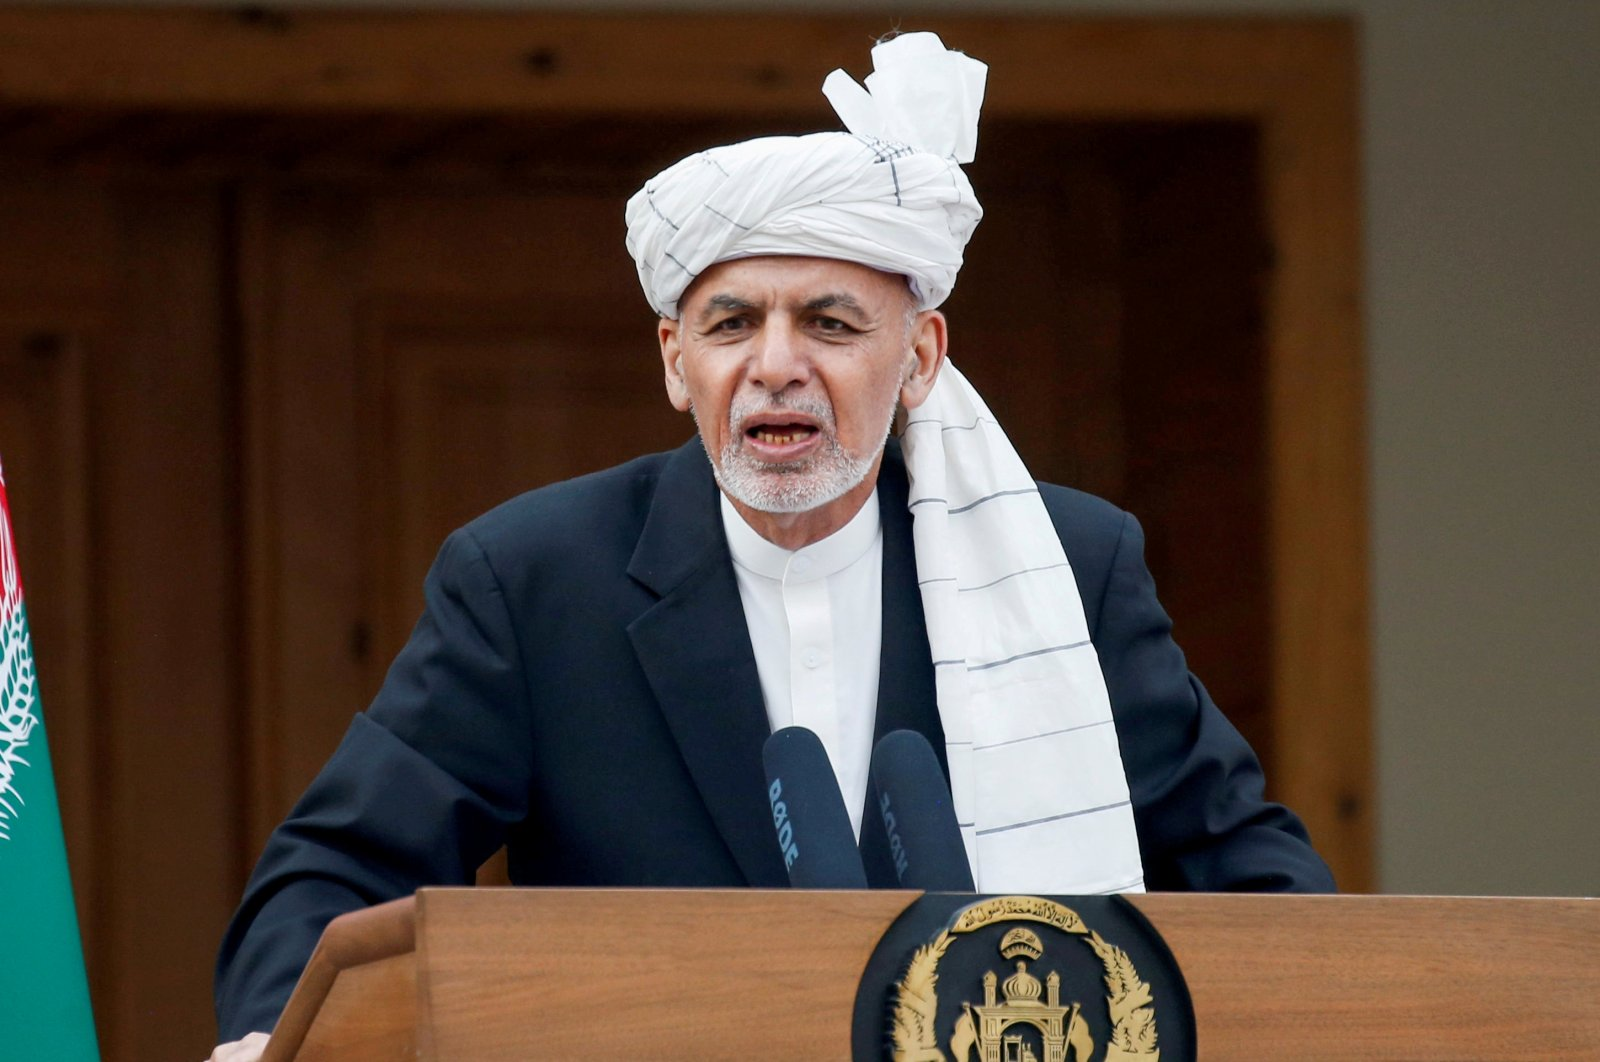 Afghanistan's President Ashraf Ghani speaks during his inauguration as president, in Kabul, Afghanistan, March 9, 2020. (Reuters Photo)